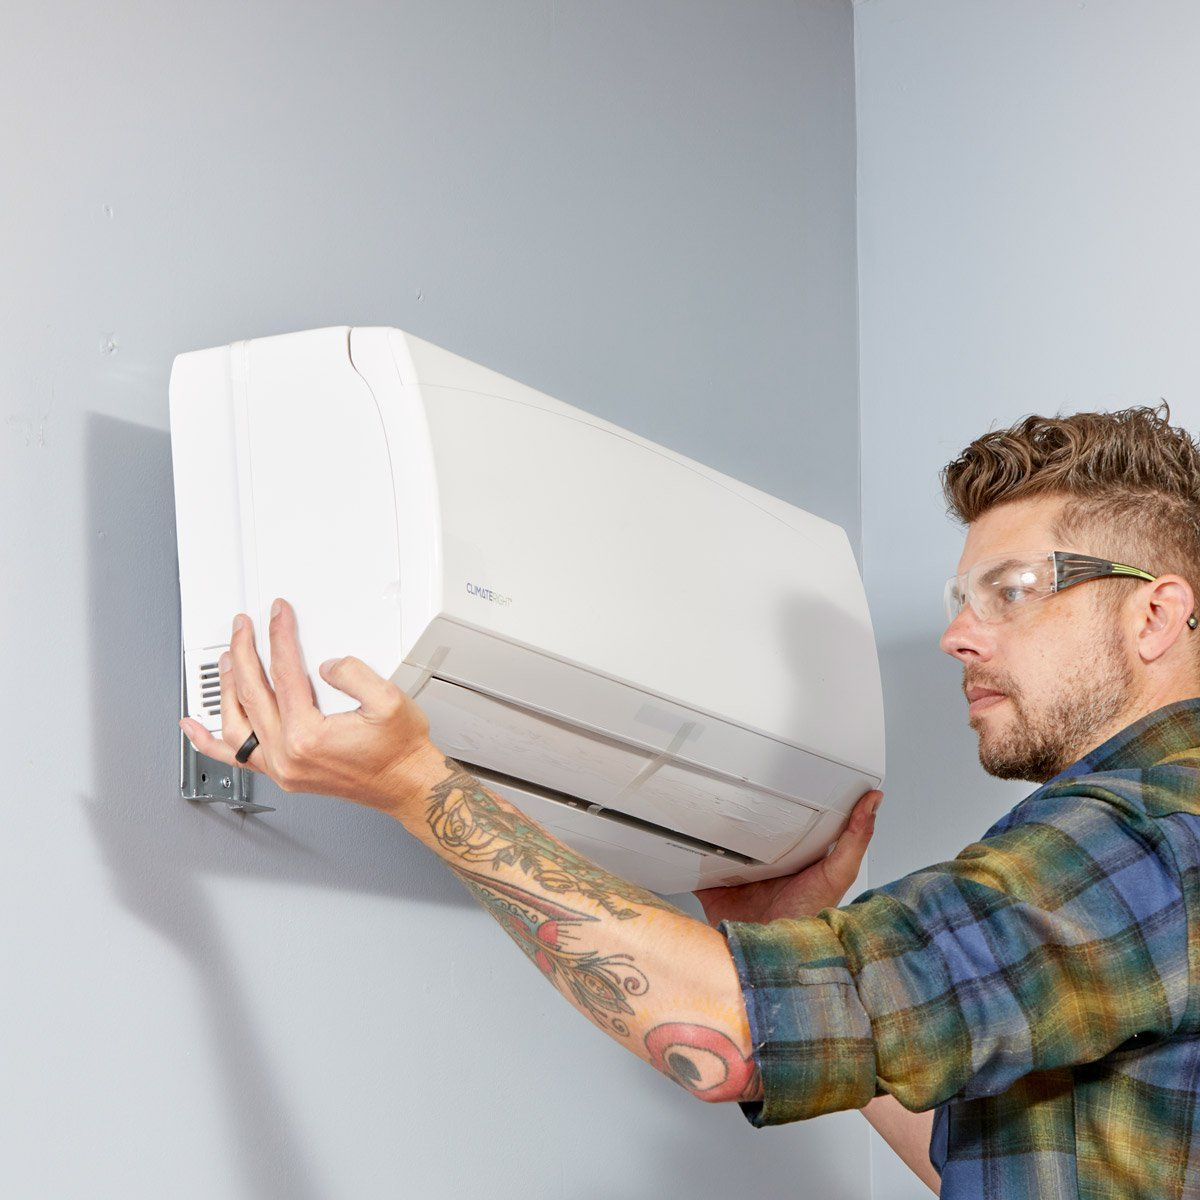 Diy ductless air conditioning air conditioner